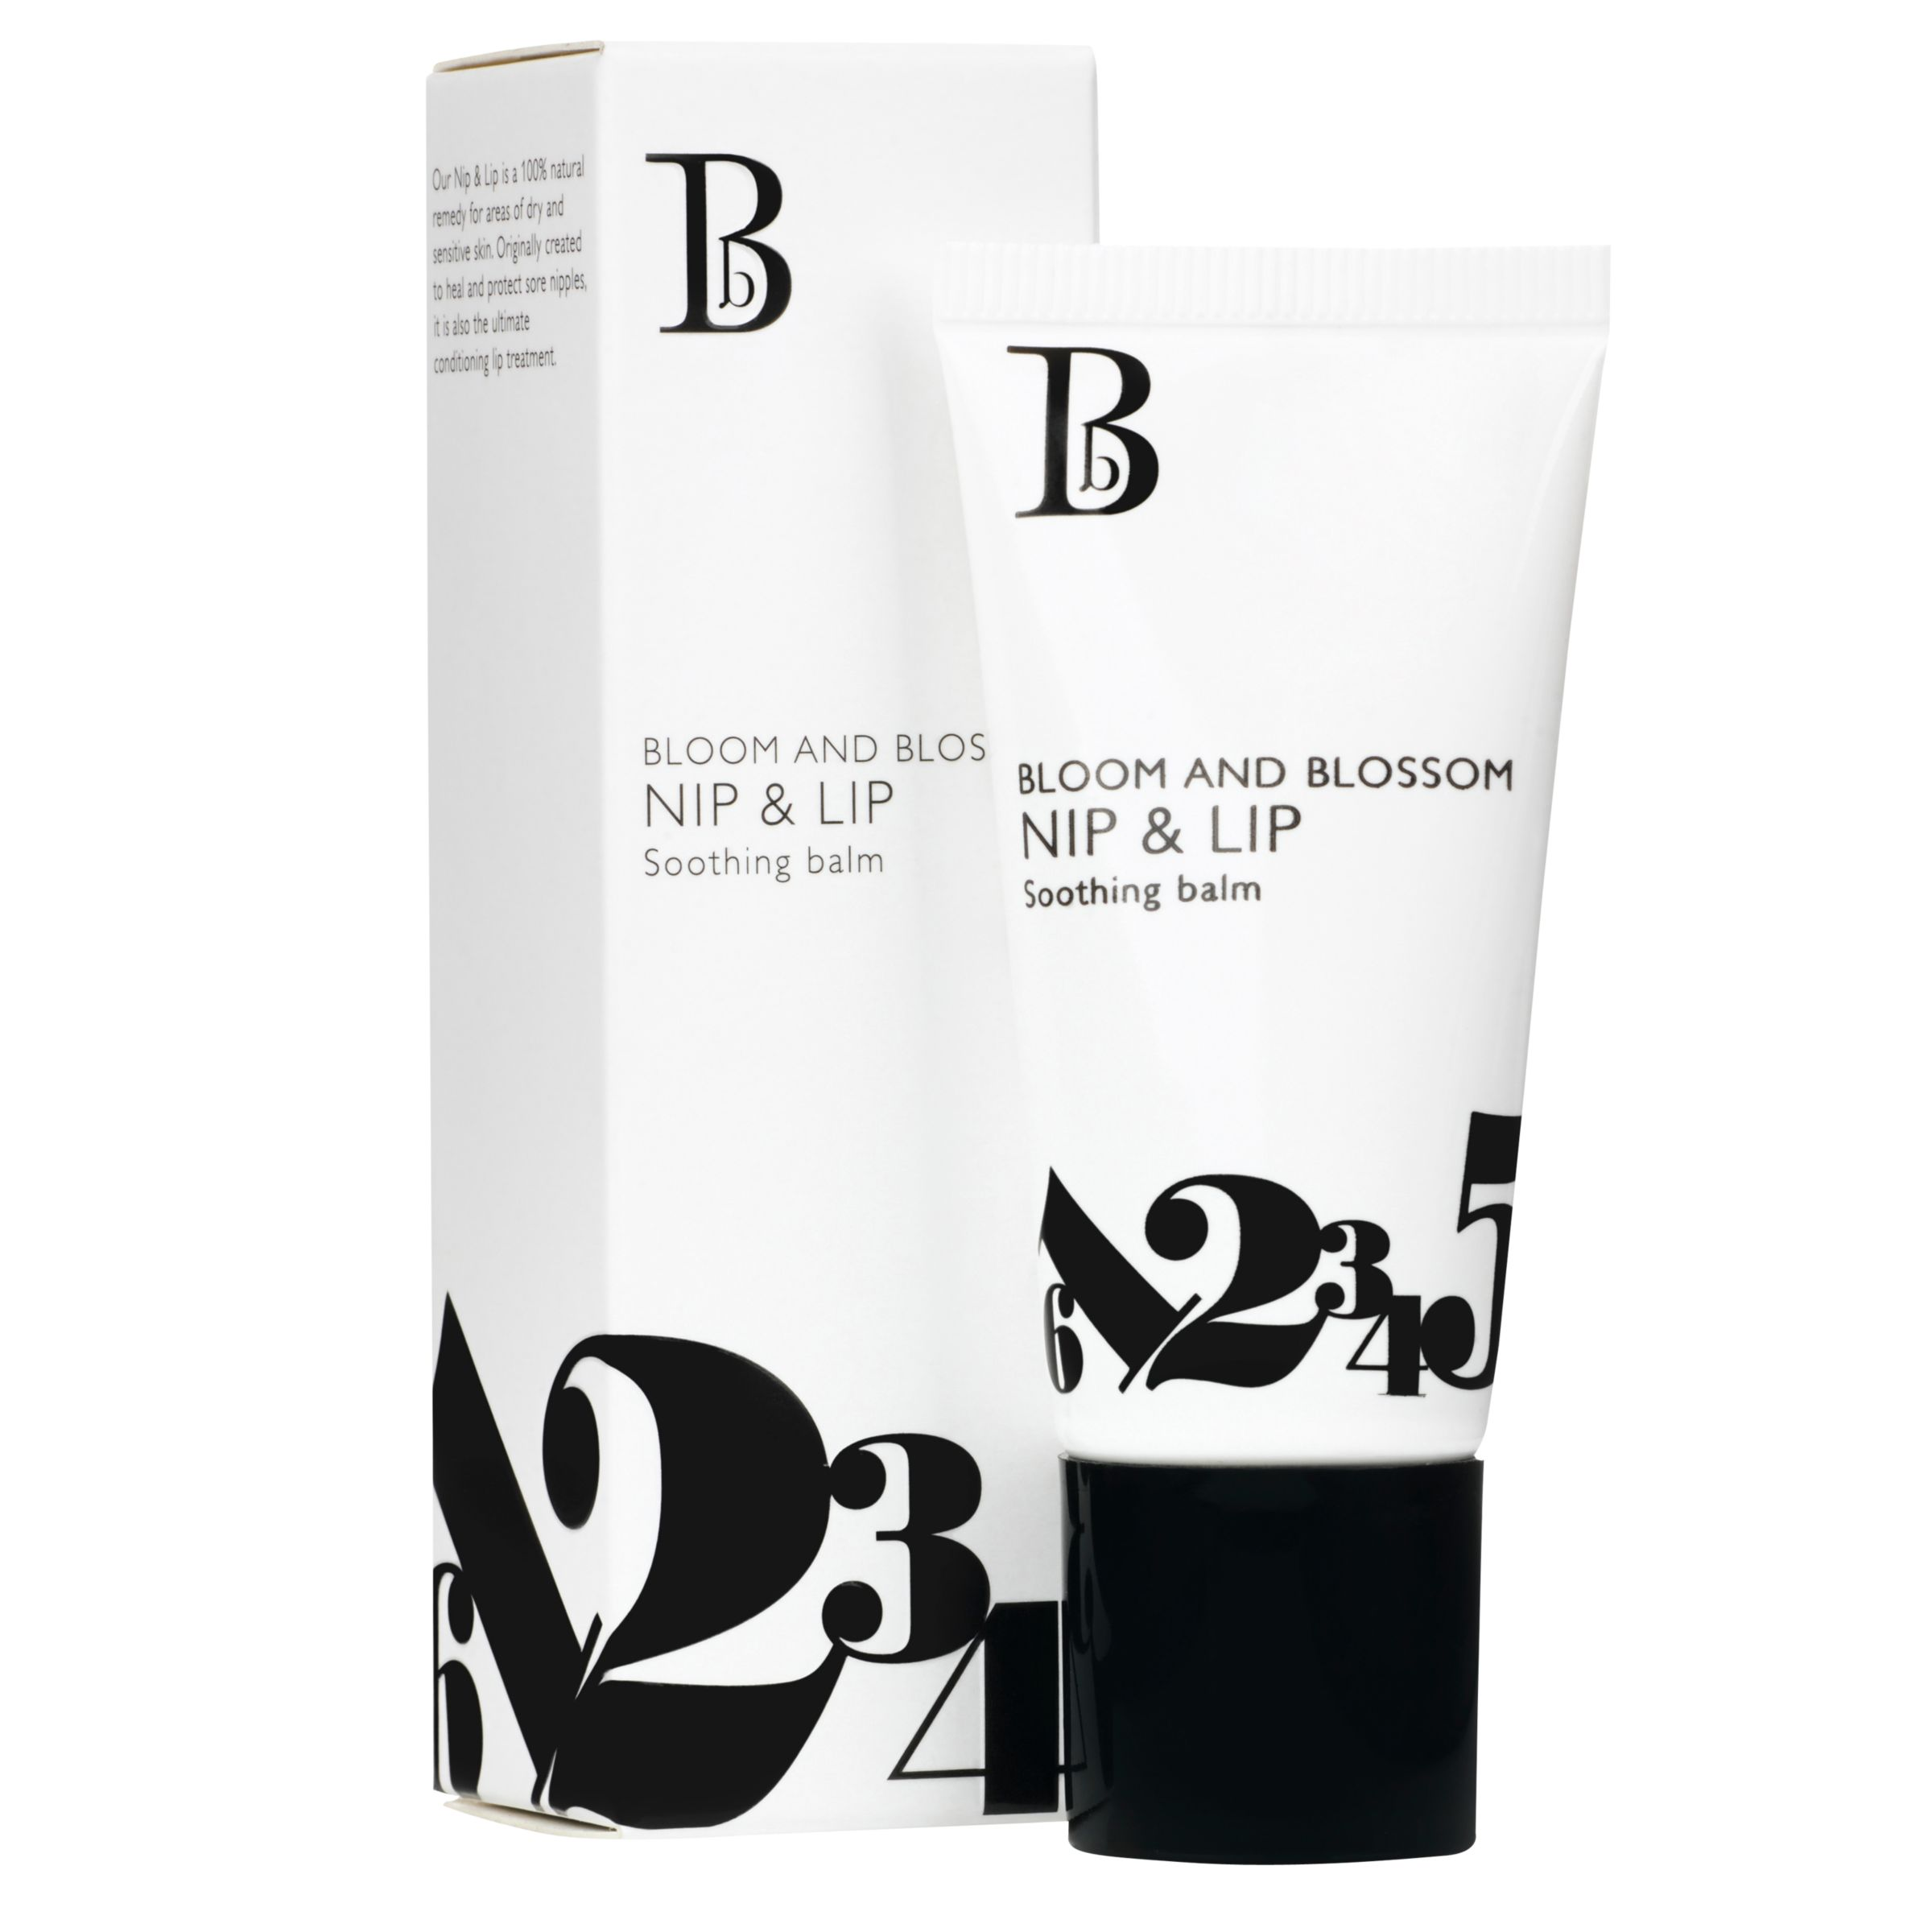 Bloom and Blossom Bloom and Blossom Nip and Lip Soothing Balm, 20ml